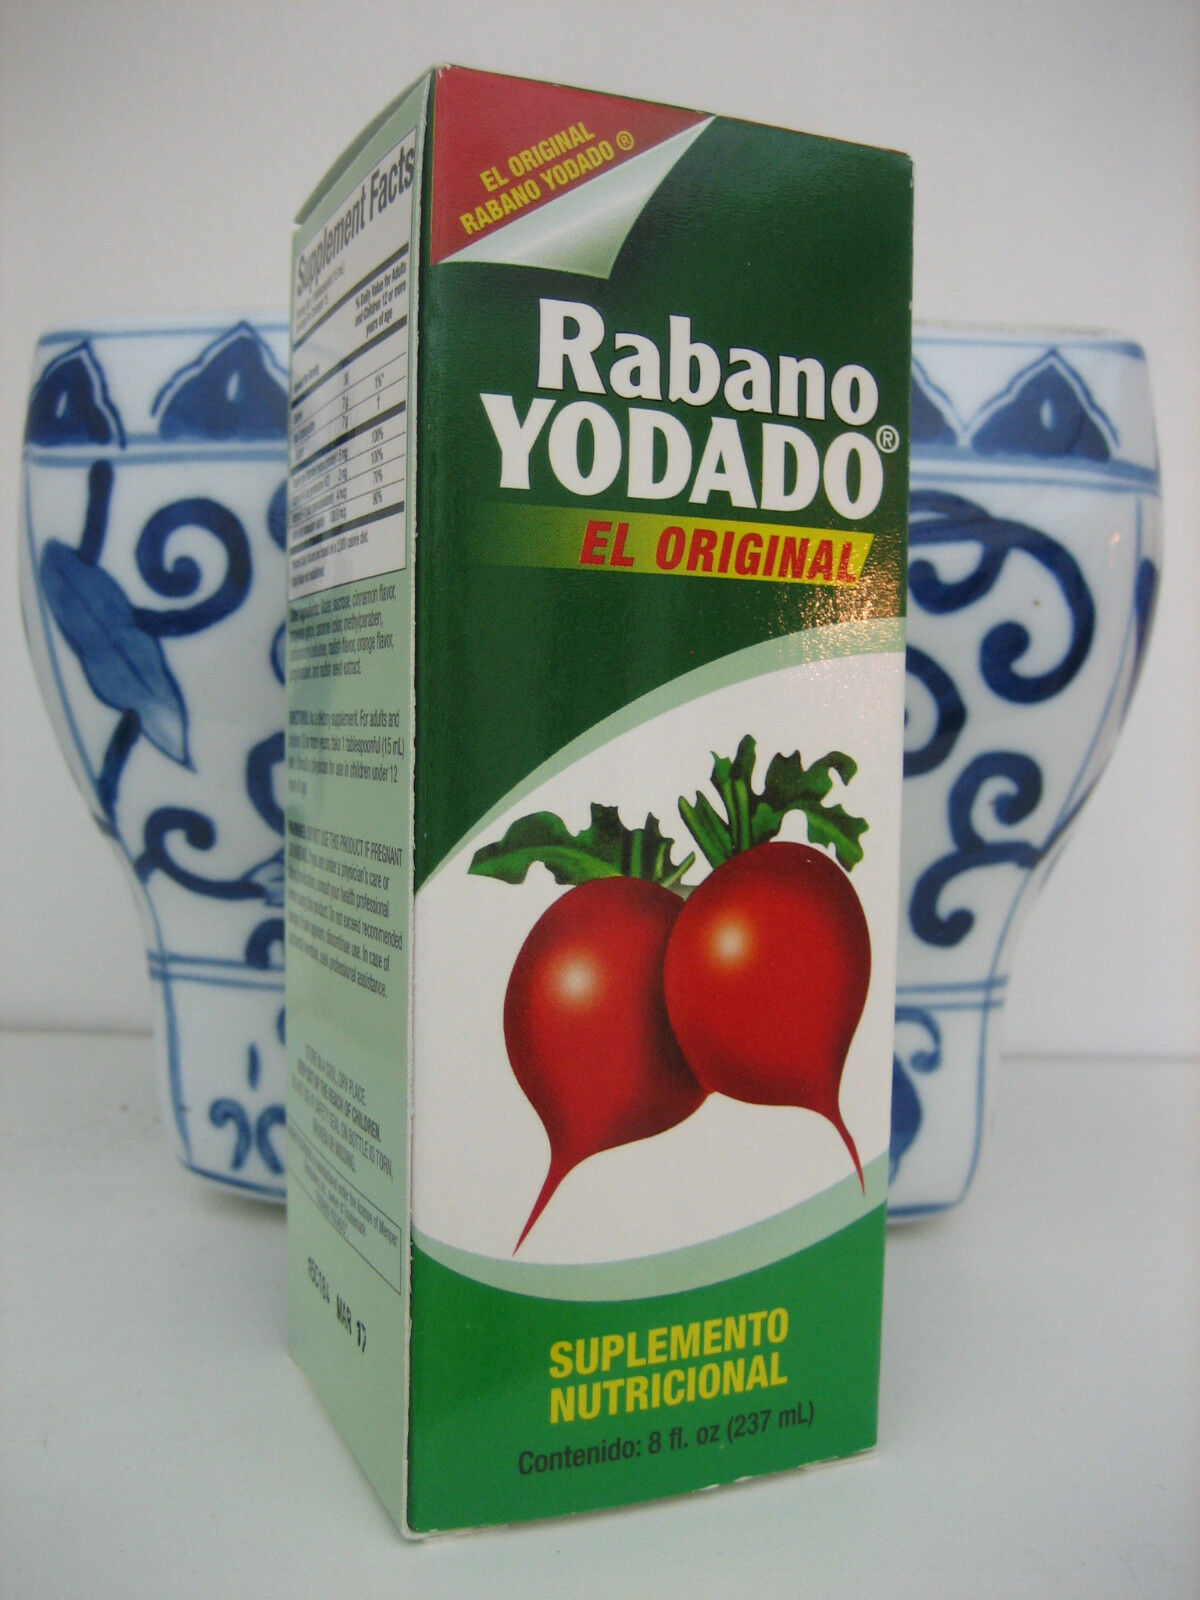 2 El Original Rabano Yodado Iodized Radish Syrup Nutritional Supplement, 8 oz